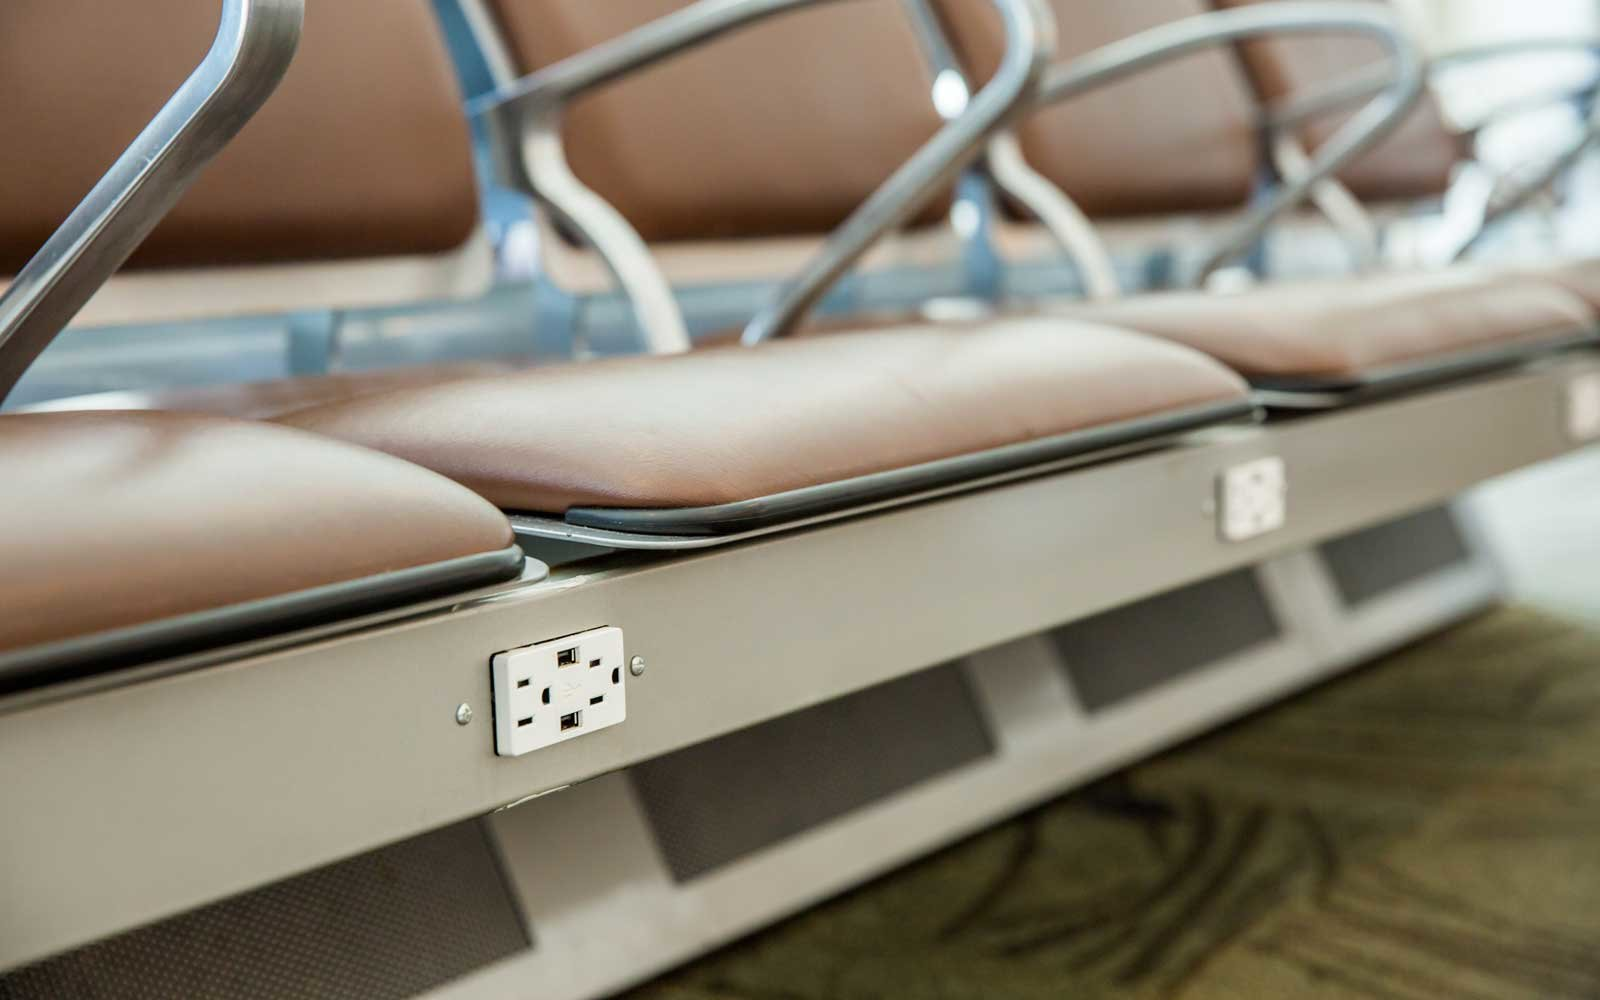 Airport charging outlet